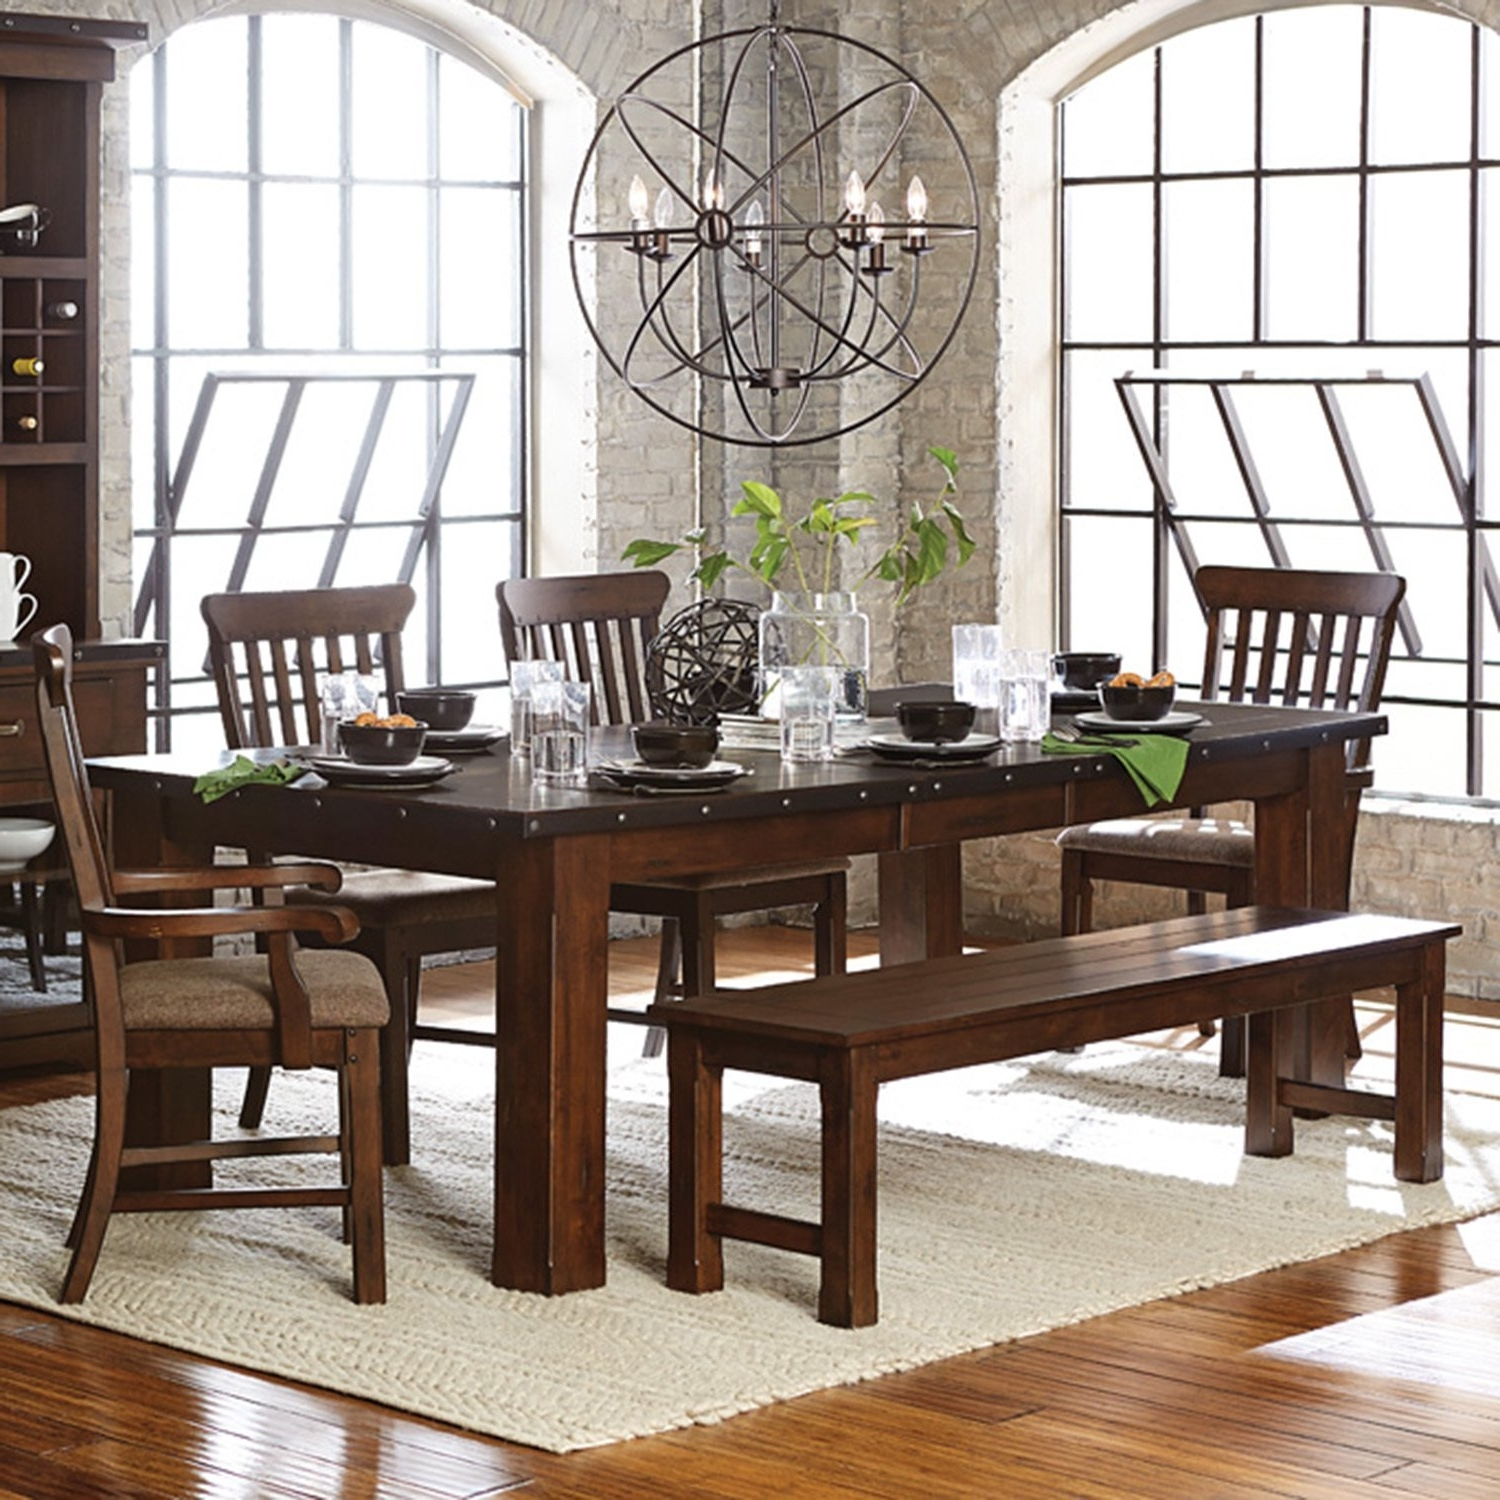 Norwood 9 Piece Rectangle Extension Dining Sets Within Preferred Shop Norwood Antique Oak Finish Extending Table Dining Set – Free (View 20 of 25)